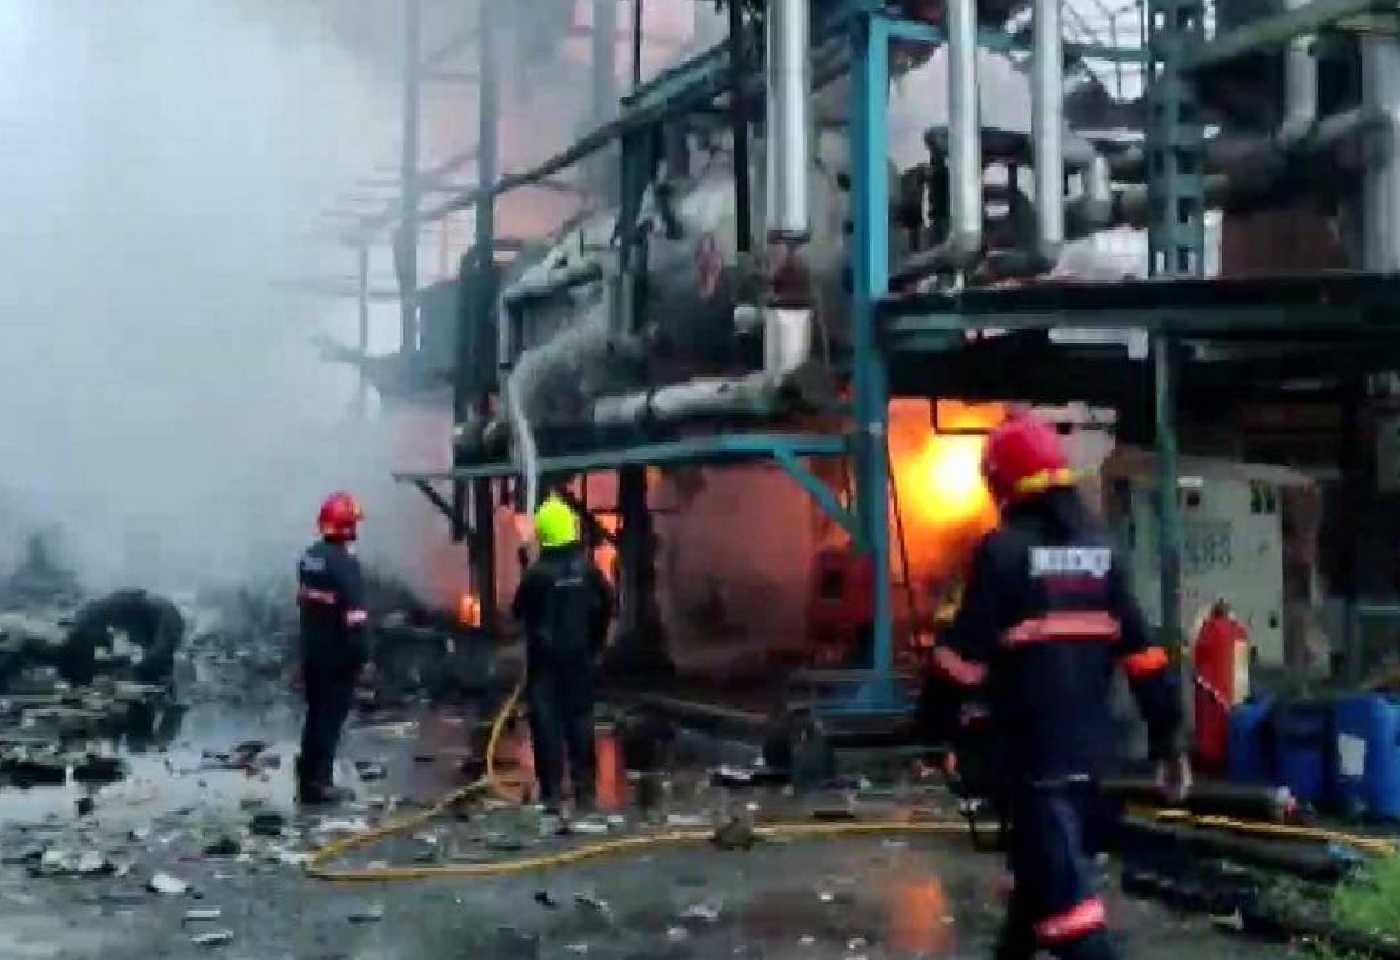 Explosion in textile factory of Palghars Tarapur, one worker died due to boiler explosion; four injured